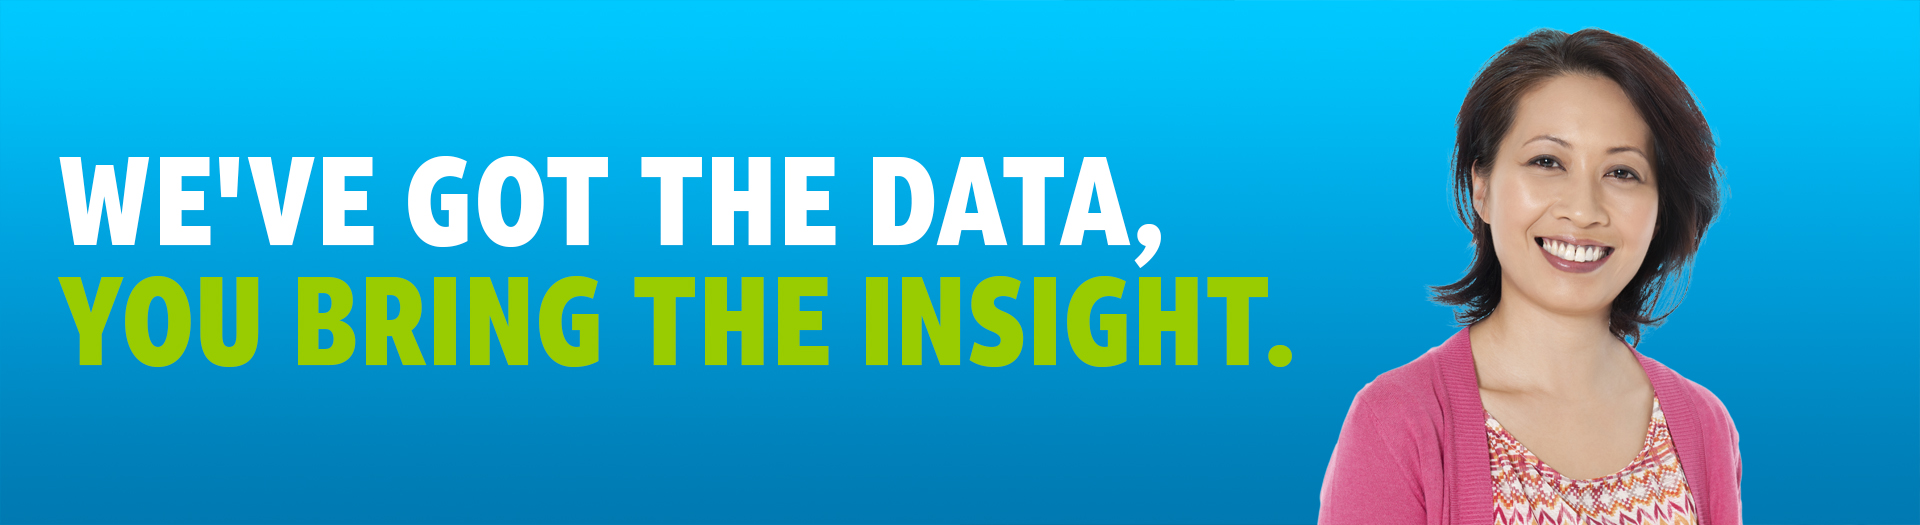 We've got the data, you bring the insight. Image: woman smiling.